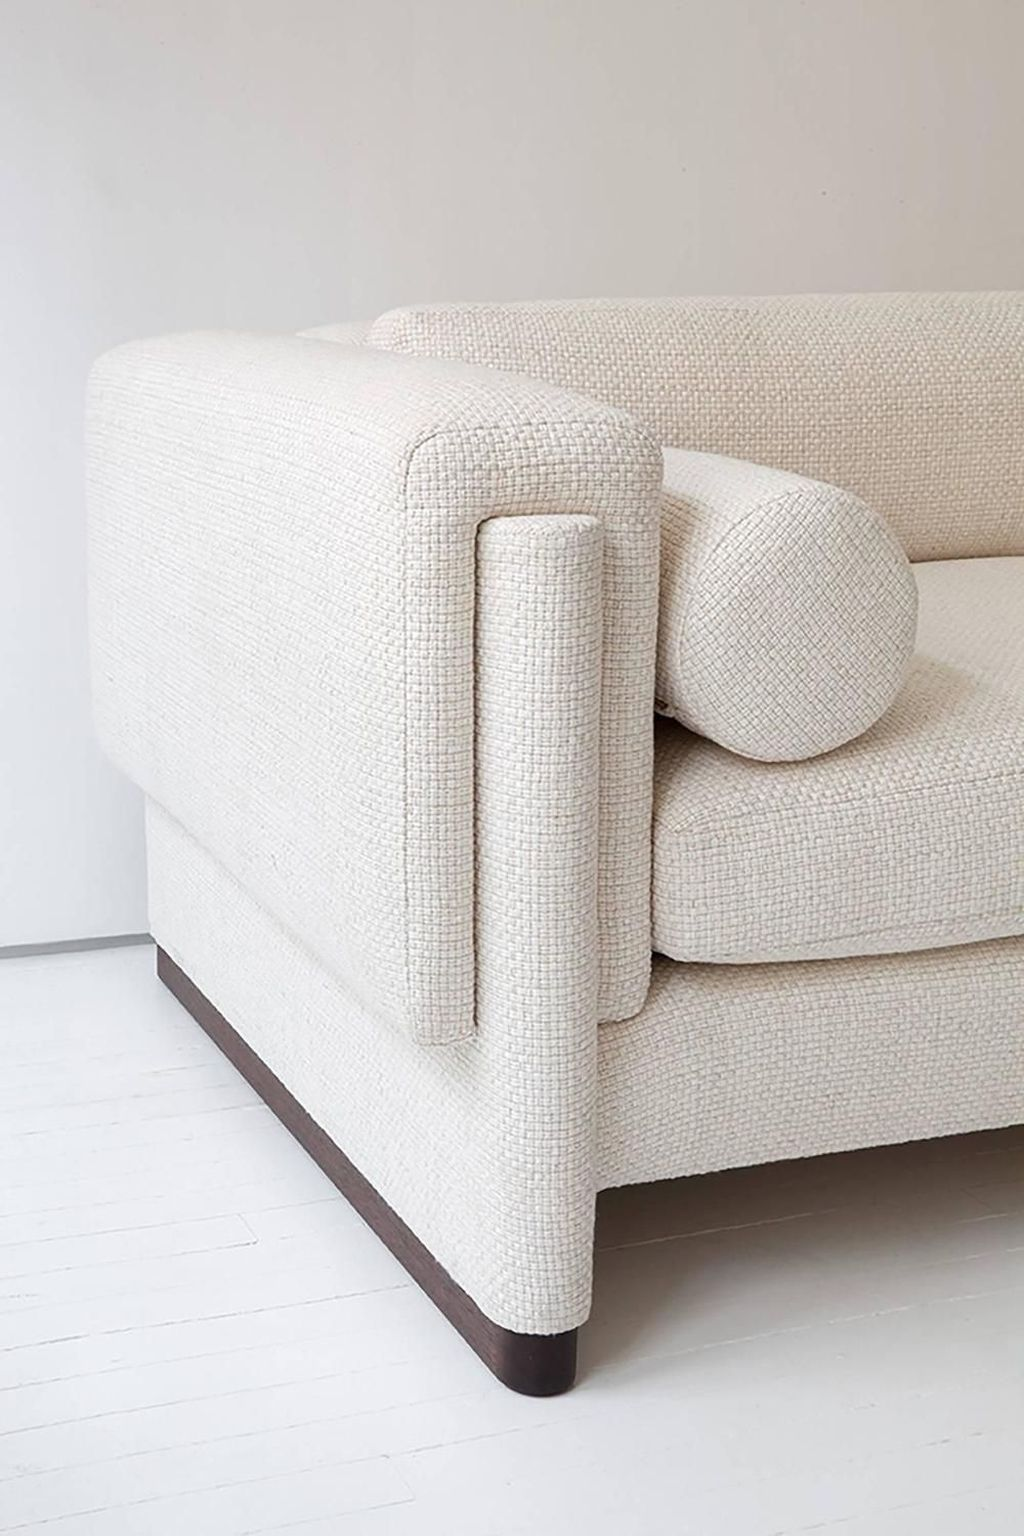 Nice 46 Affordable Modern Sofa Design Ideas More At Https Dailyhouzy